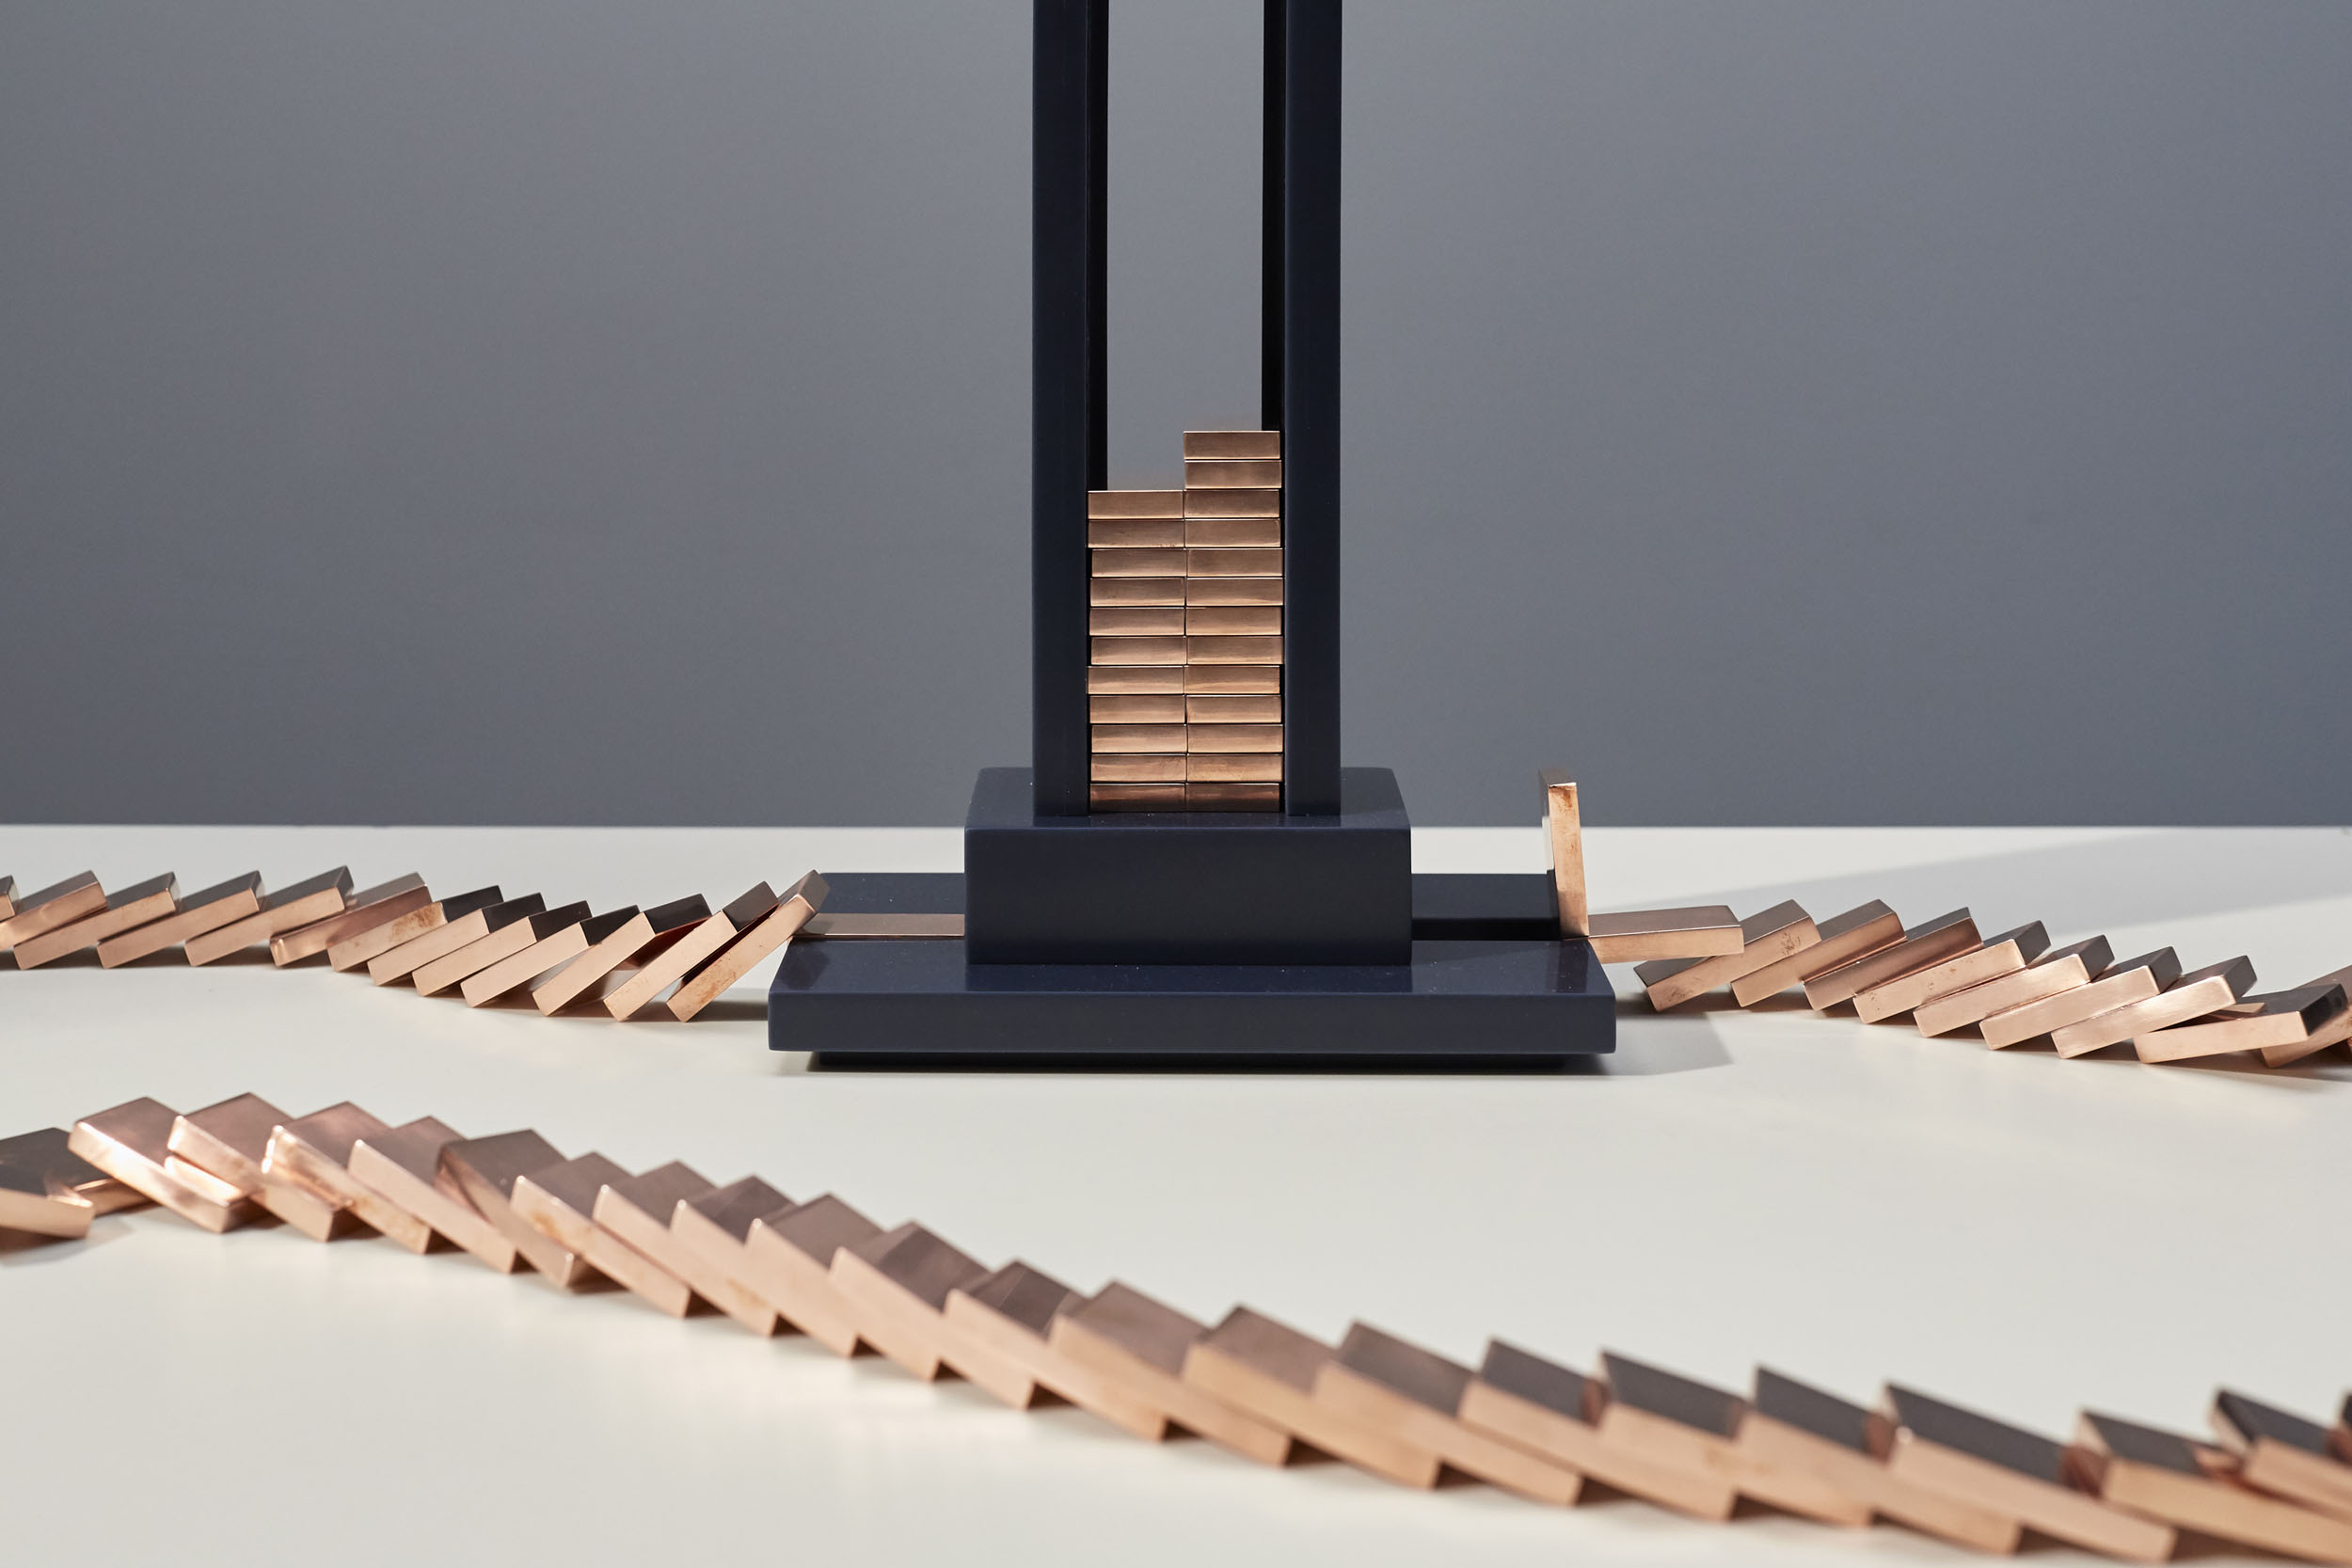 Detail of Domino Light base and collapsed copper dominos